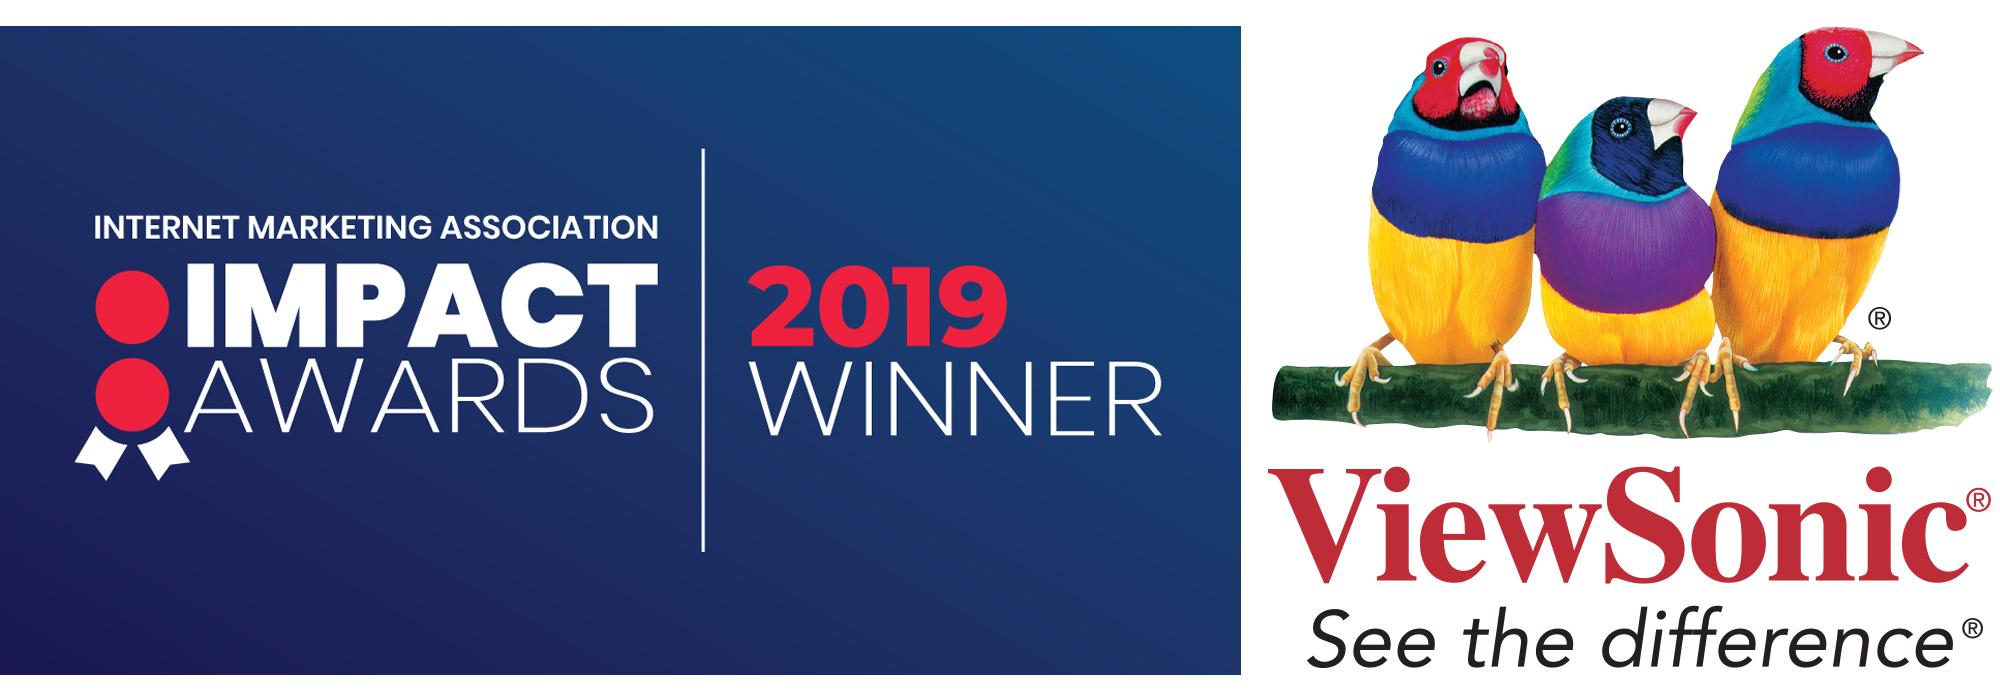 ViewSonic Honored for Innovation of the Year at 2019 IMPACT Awards  Hosted by the Internet Marketing Association